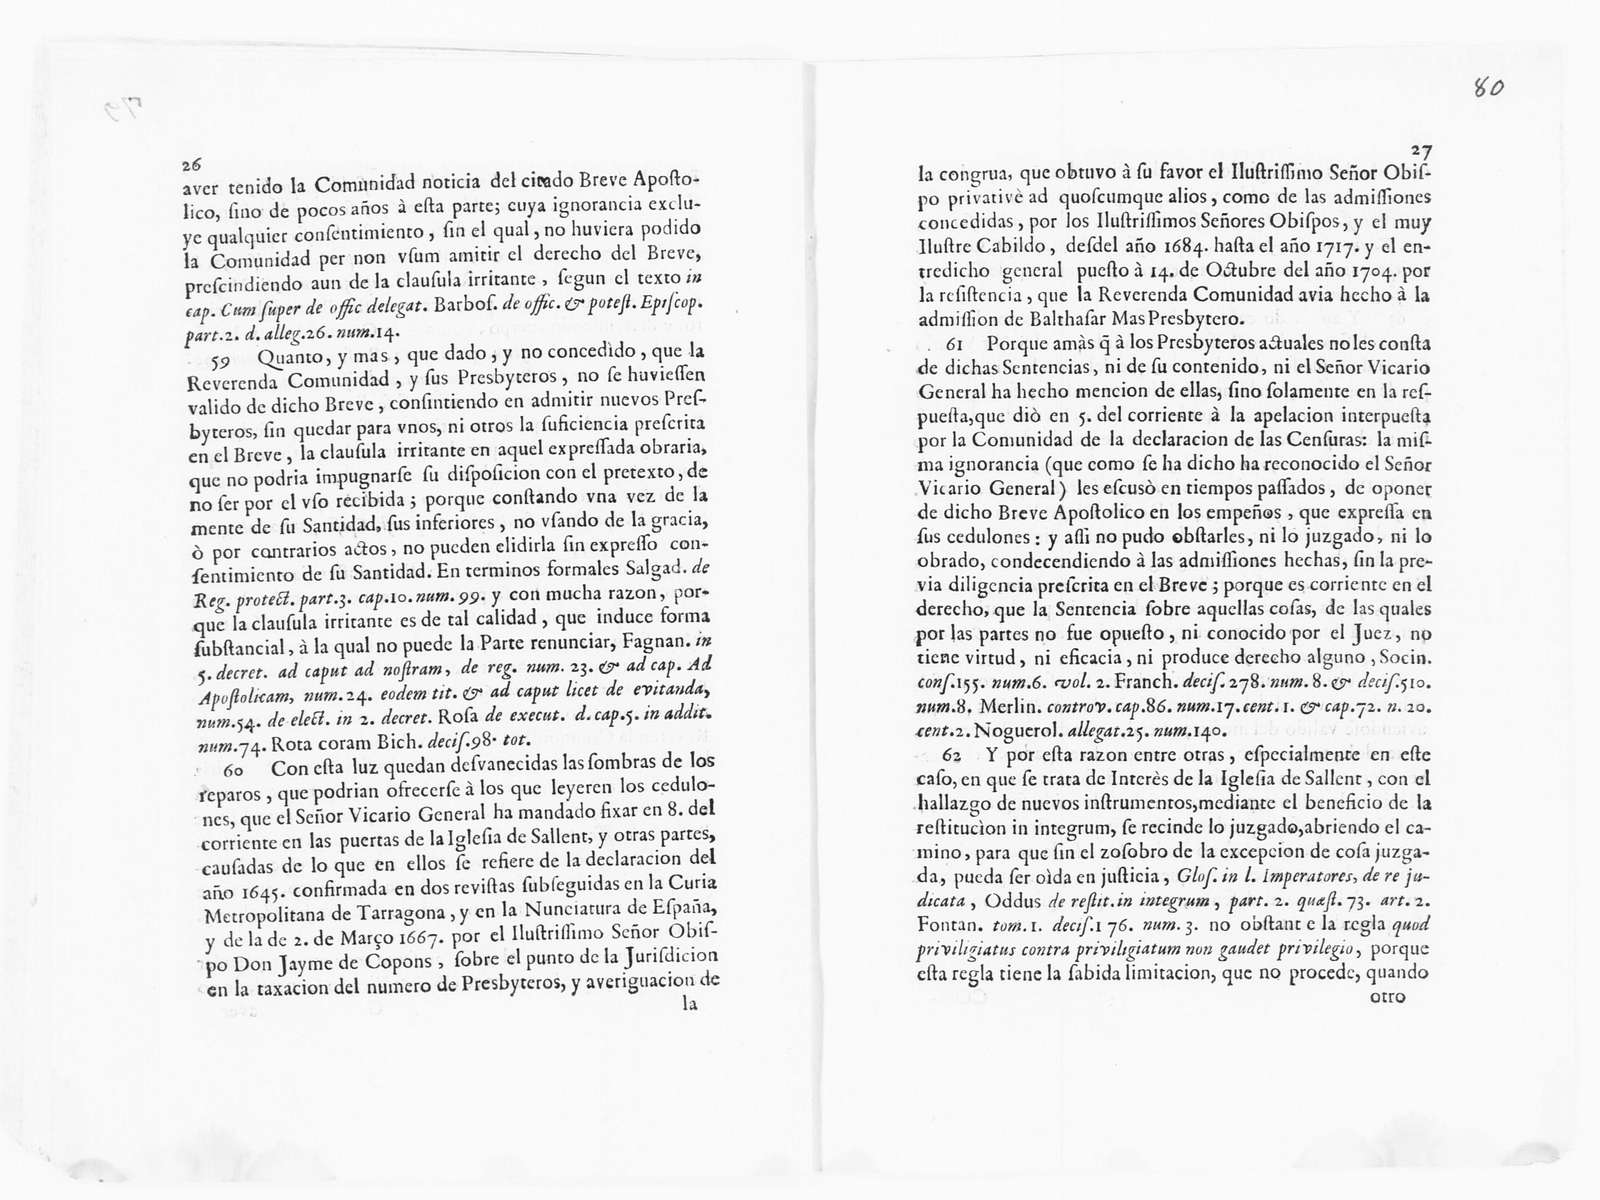 Brief on behalf Juan Barrera Barnils, the General Vicar of the Bishopric of Vic, versus the community of the parish church of Santa María of the village of Sallent, its Rector and other priests, concerning the rejection of José Bria and José Font to be members of said community of the parish church of Santa María of the village of Sallent. December 12, 1720